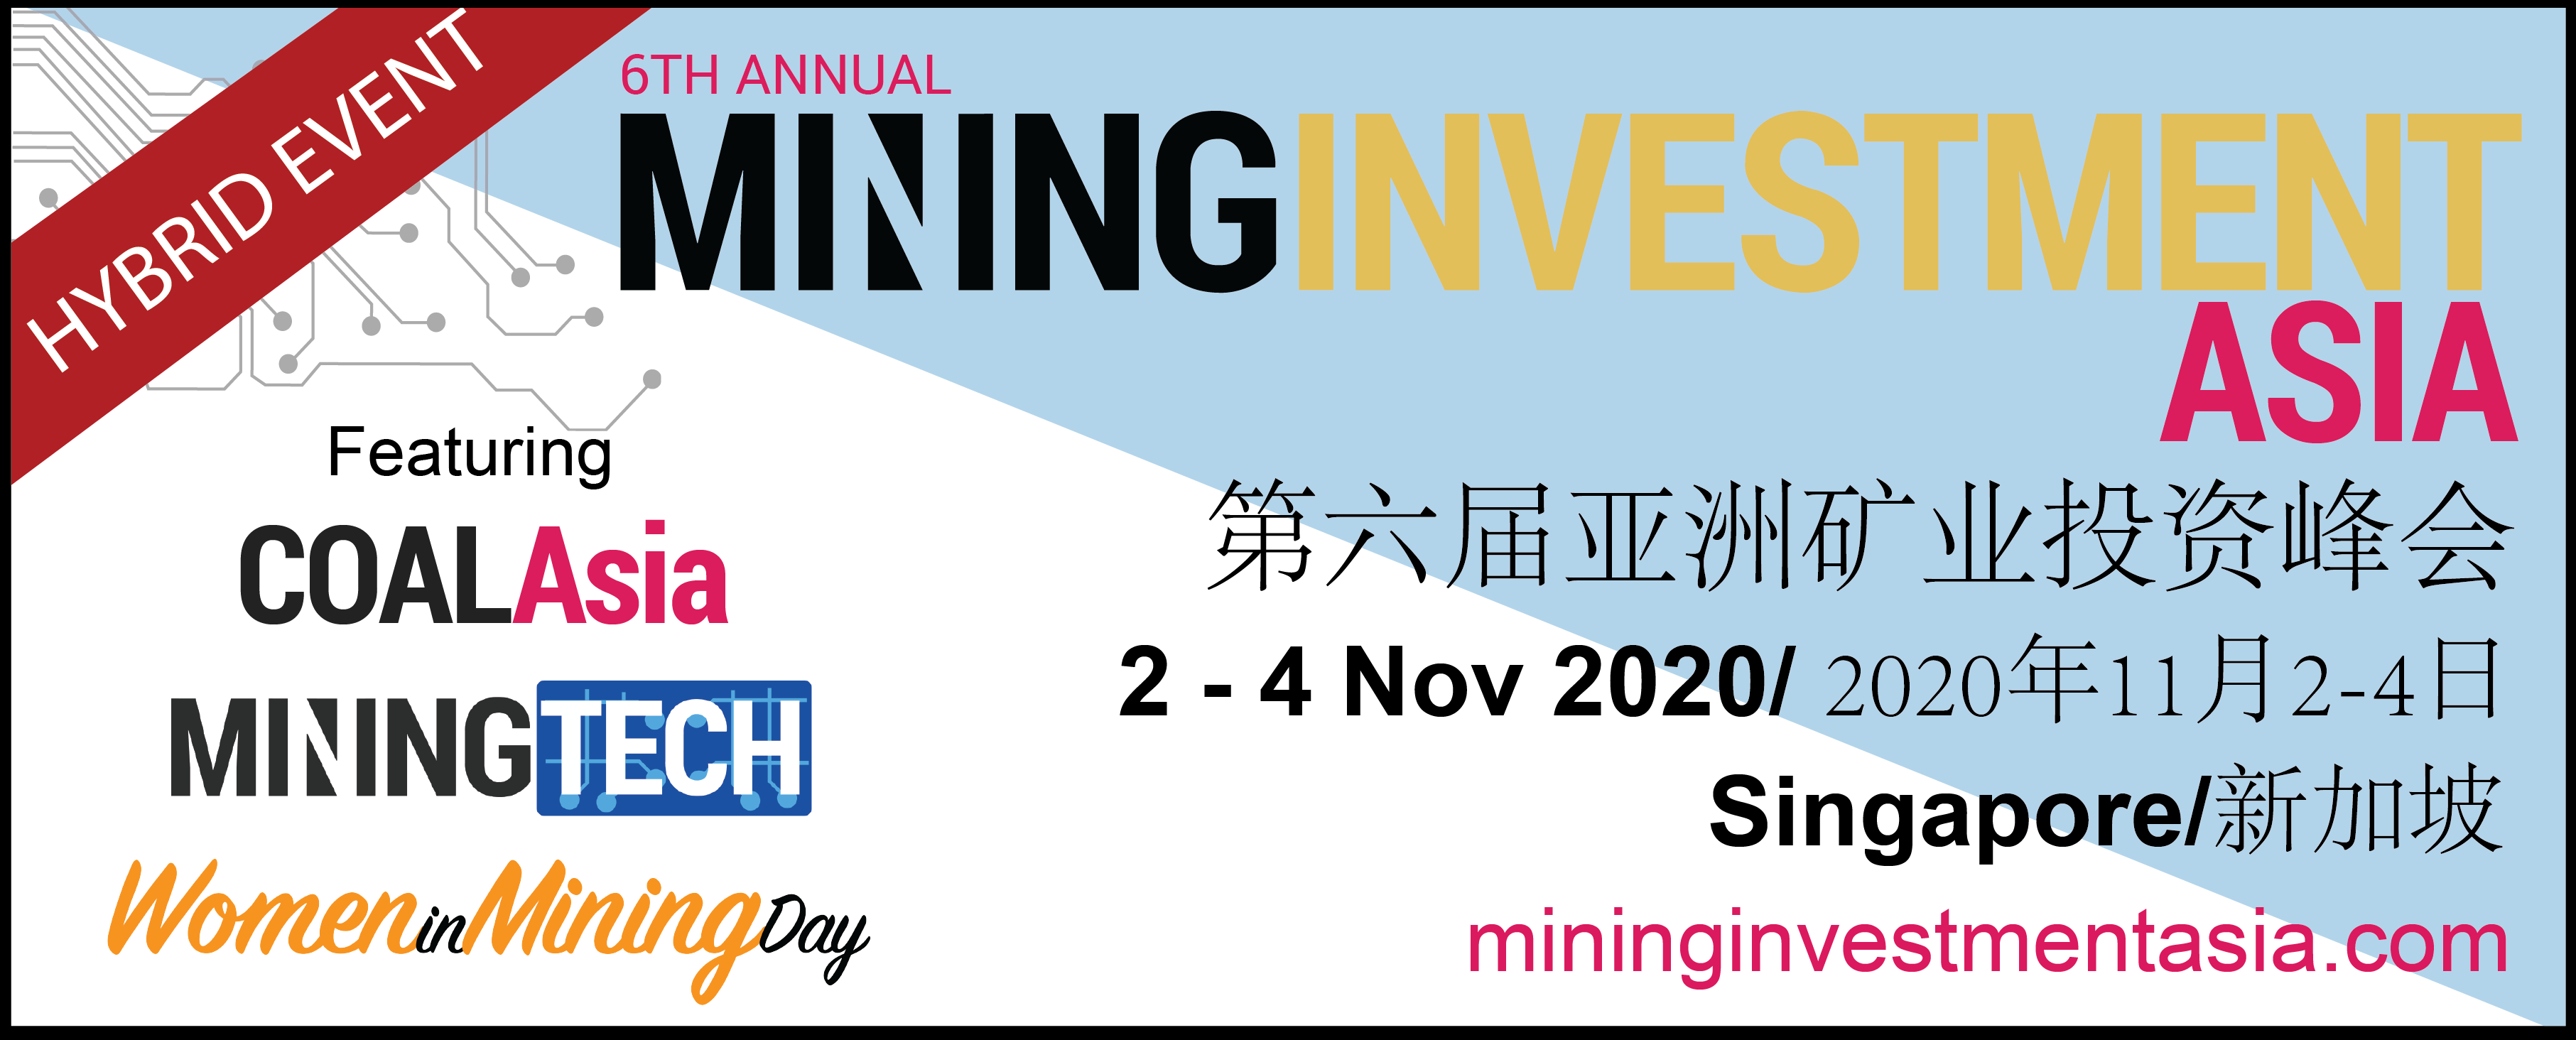 Mining Investment Asia 2020 870 x 351 01